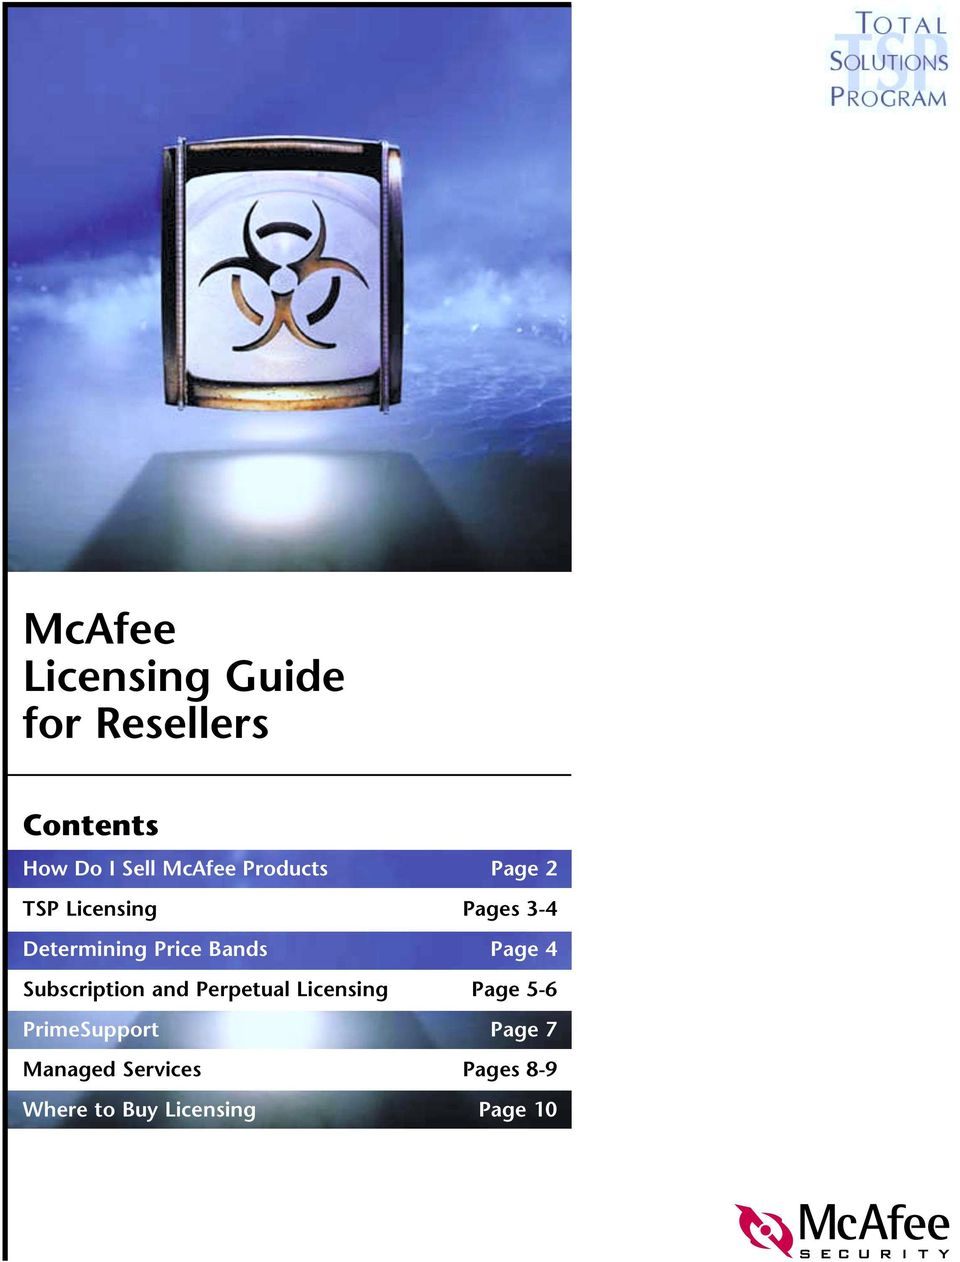 McAfee Licensing Guide for Resellers - PDF